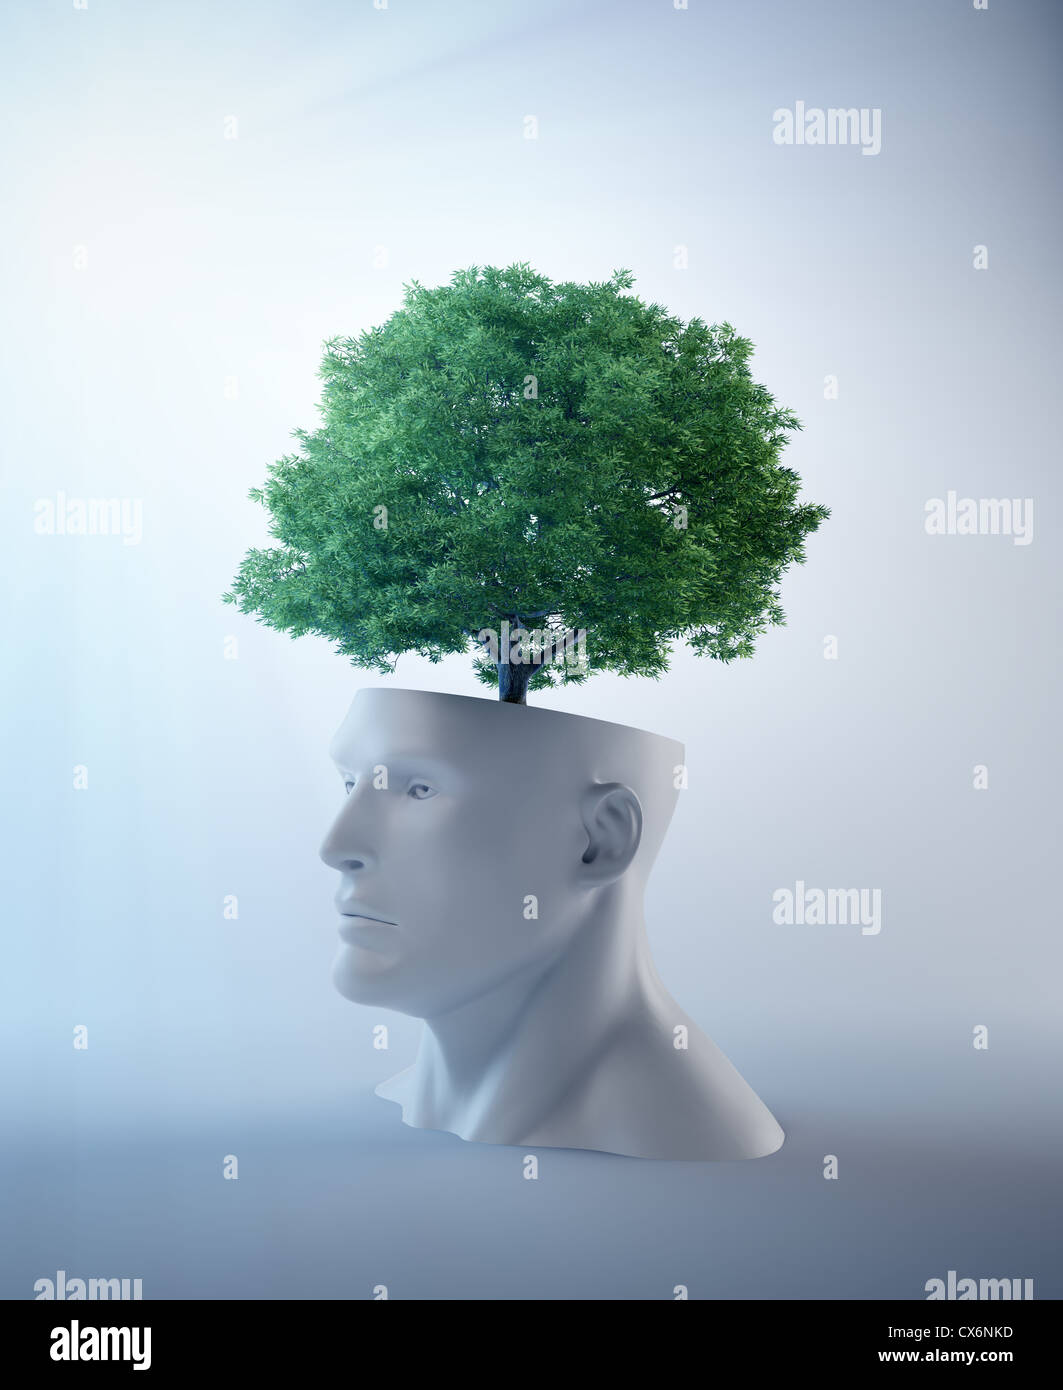 Tree growing out of an abstract head - creativity and psychology concept illustration  - Stock Image